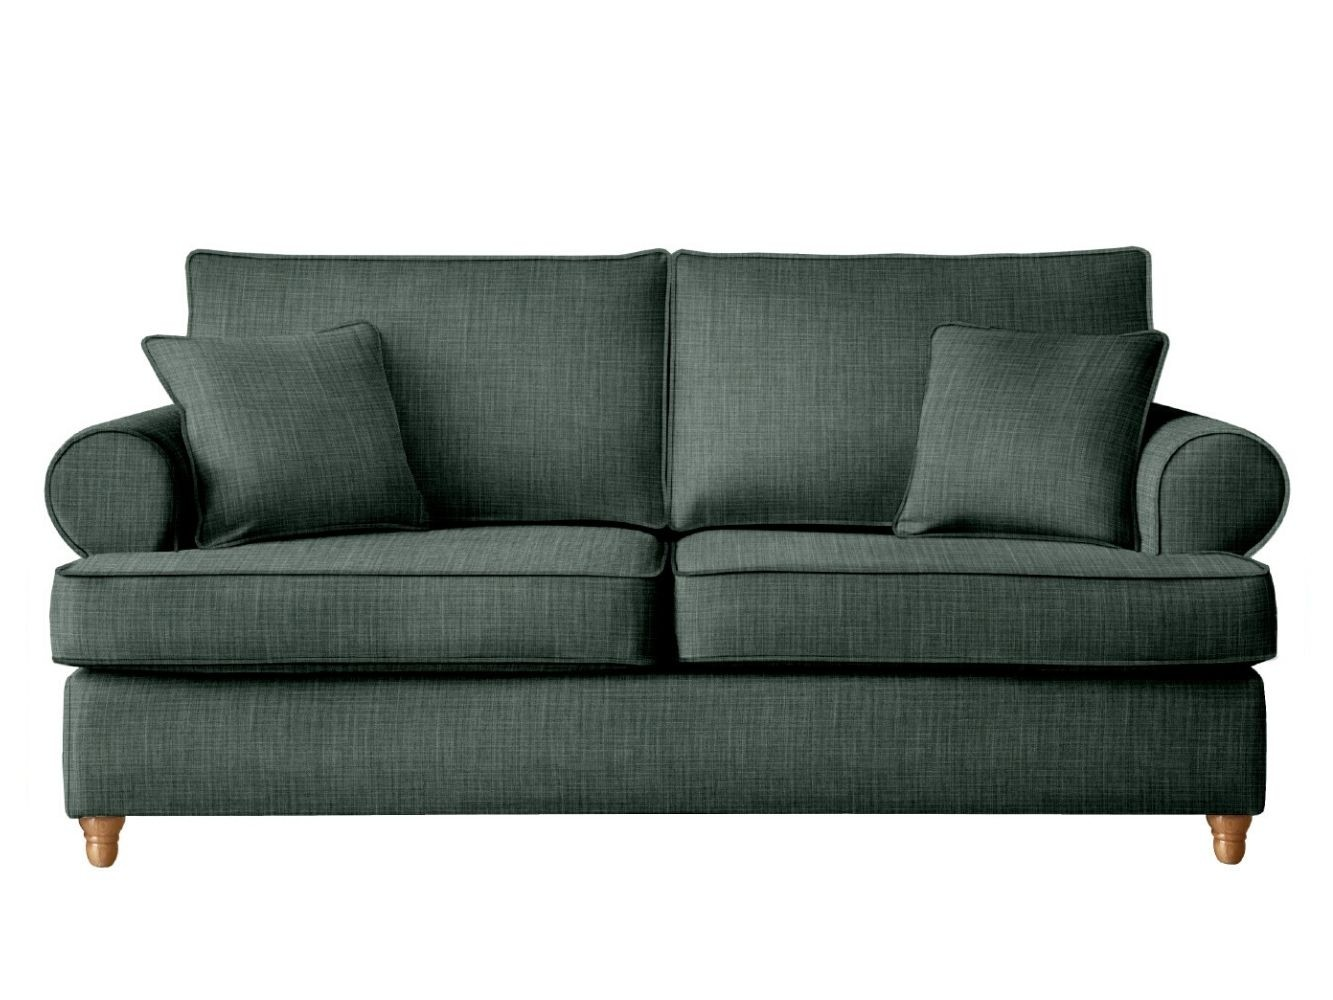 This is how I look in House Linen Steel Grey with reflex foam seat cushions